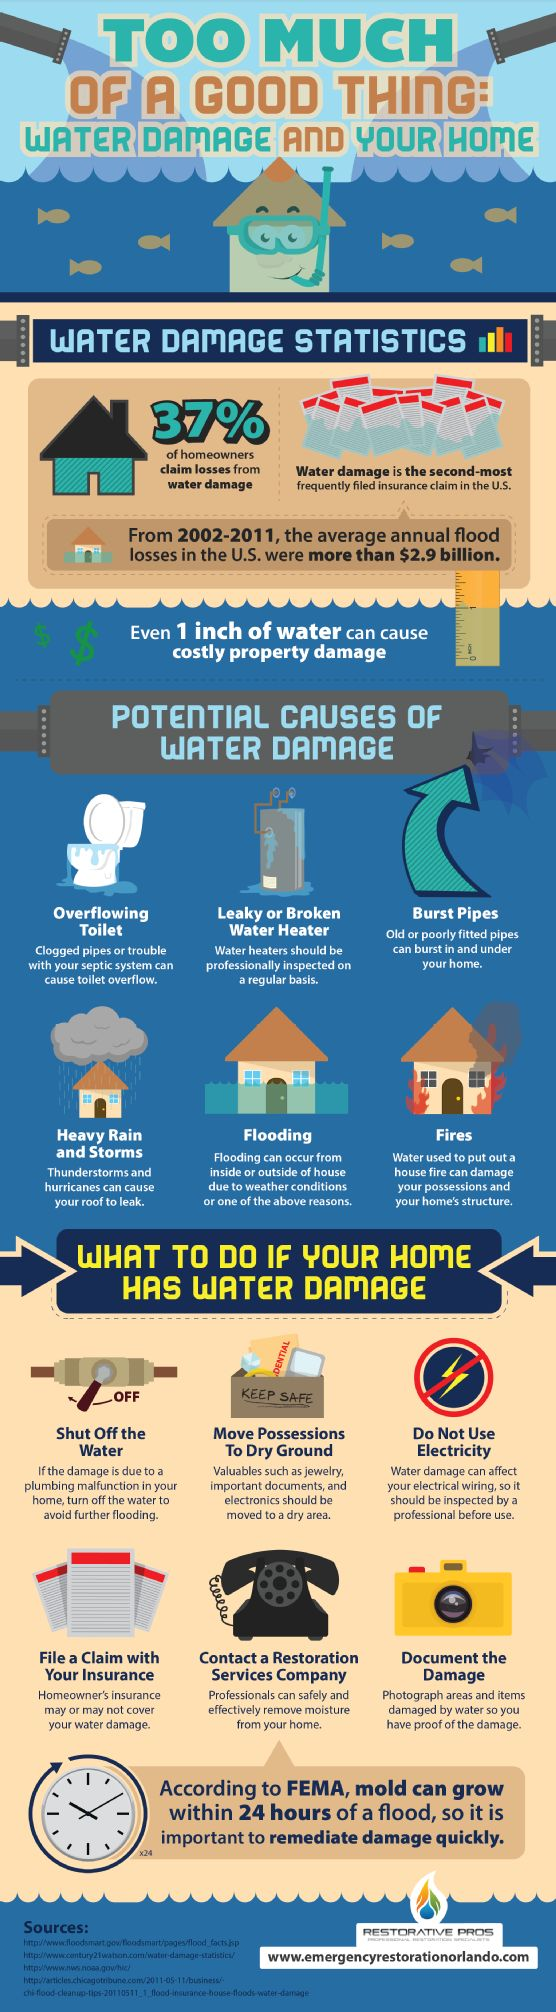 After a fire, most people do not worry about water damage, but they should. The water used to put out the fire might cause significant issues in your